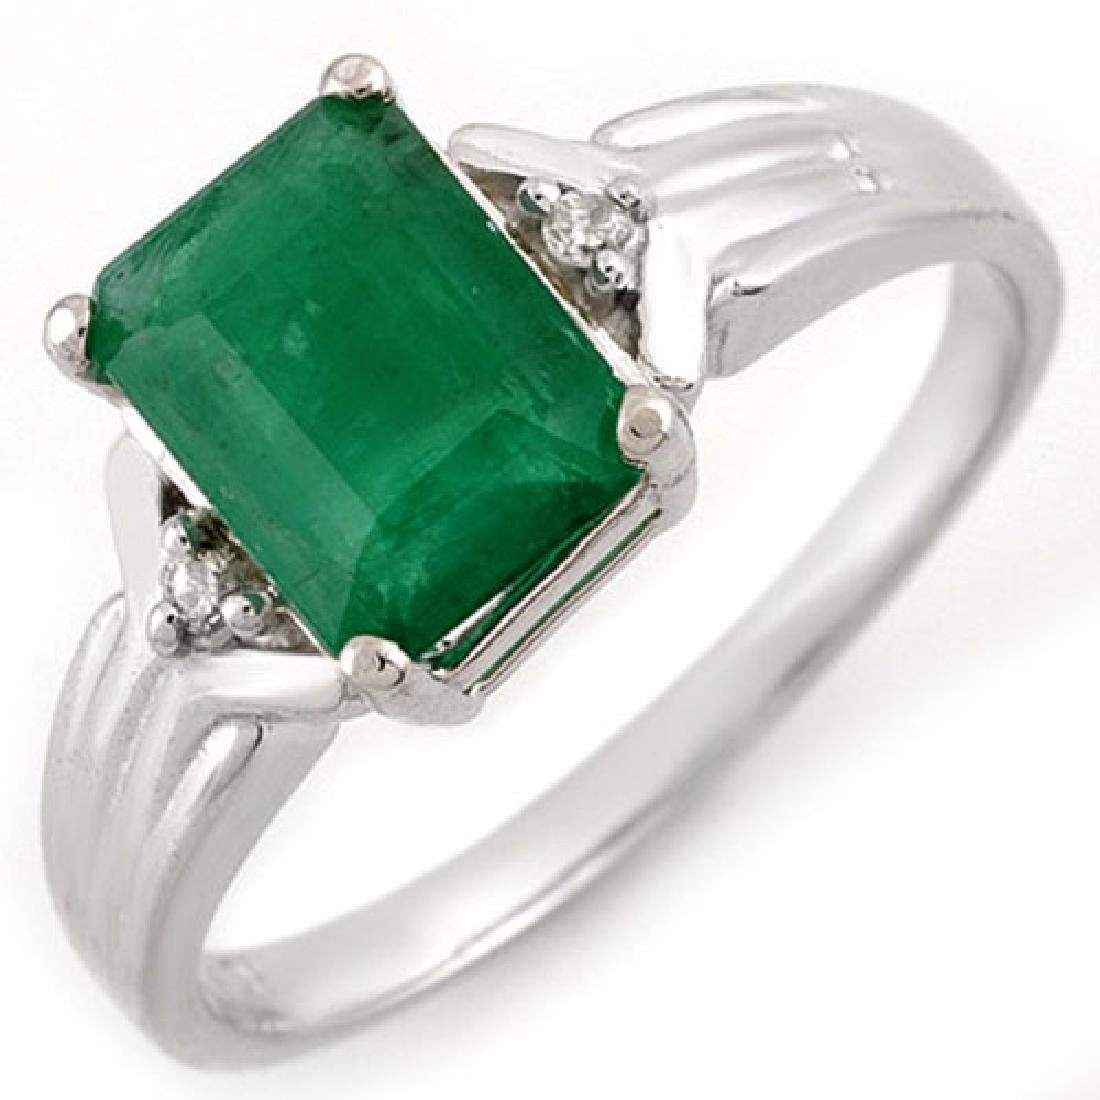 1.53 CTW Emerald & Diamond Ring 10K White Gold